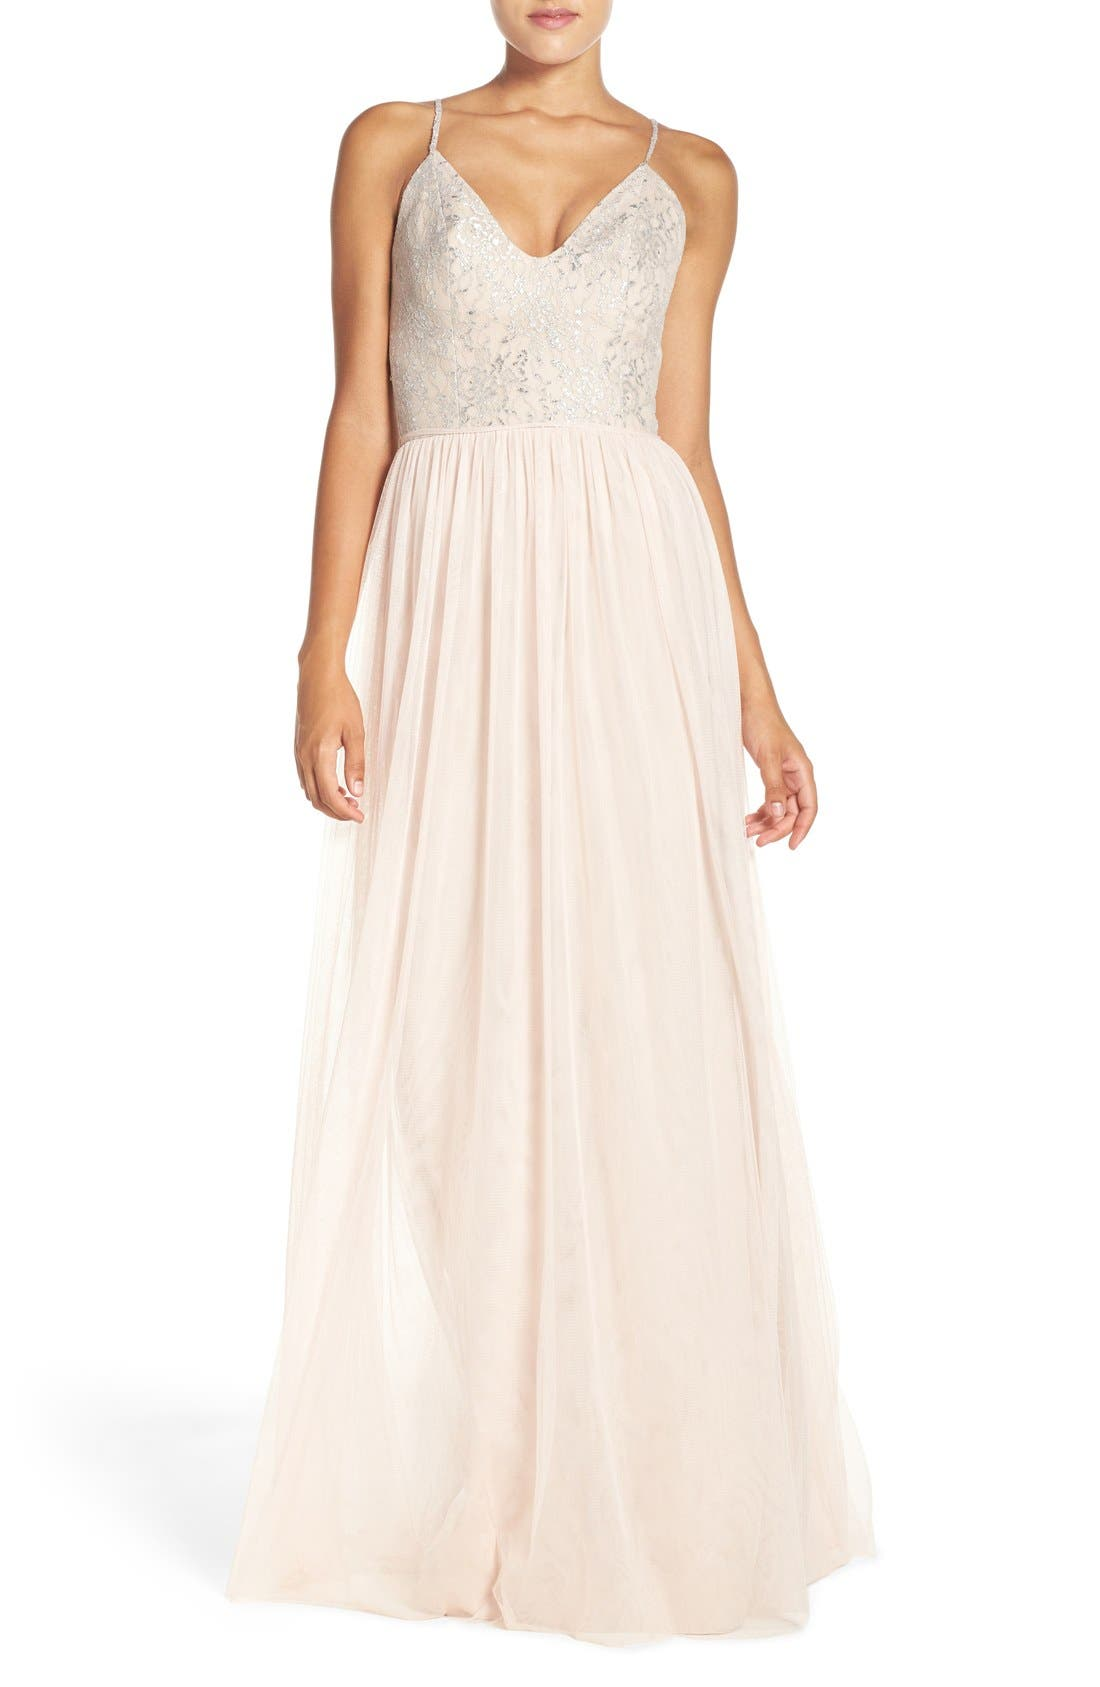 HAYLEY PAIGE OCCASIONS Metallic Lace & Tulle Spaghetti